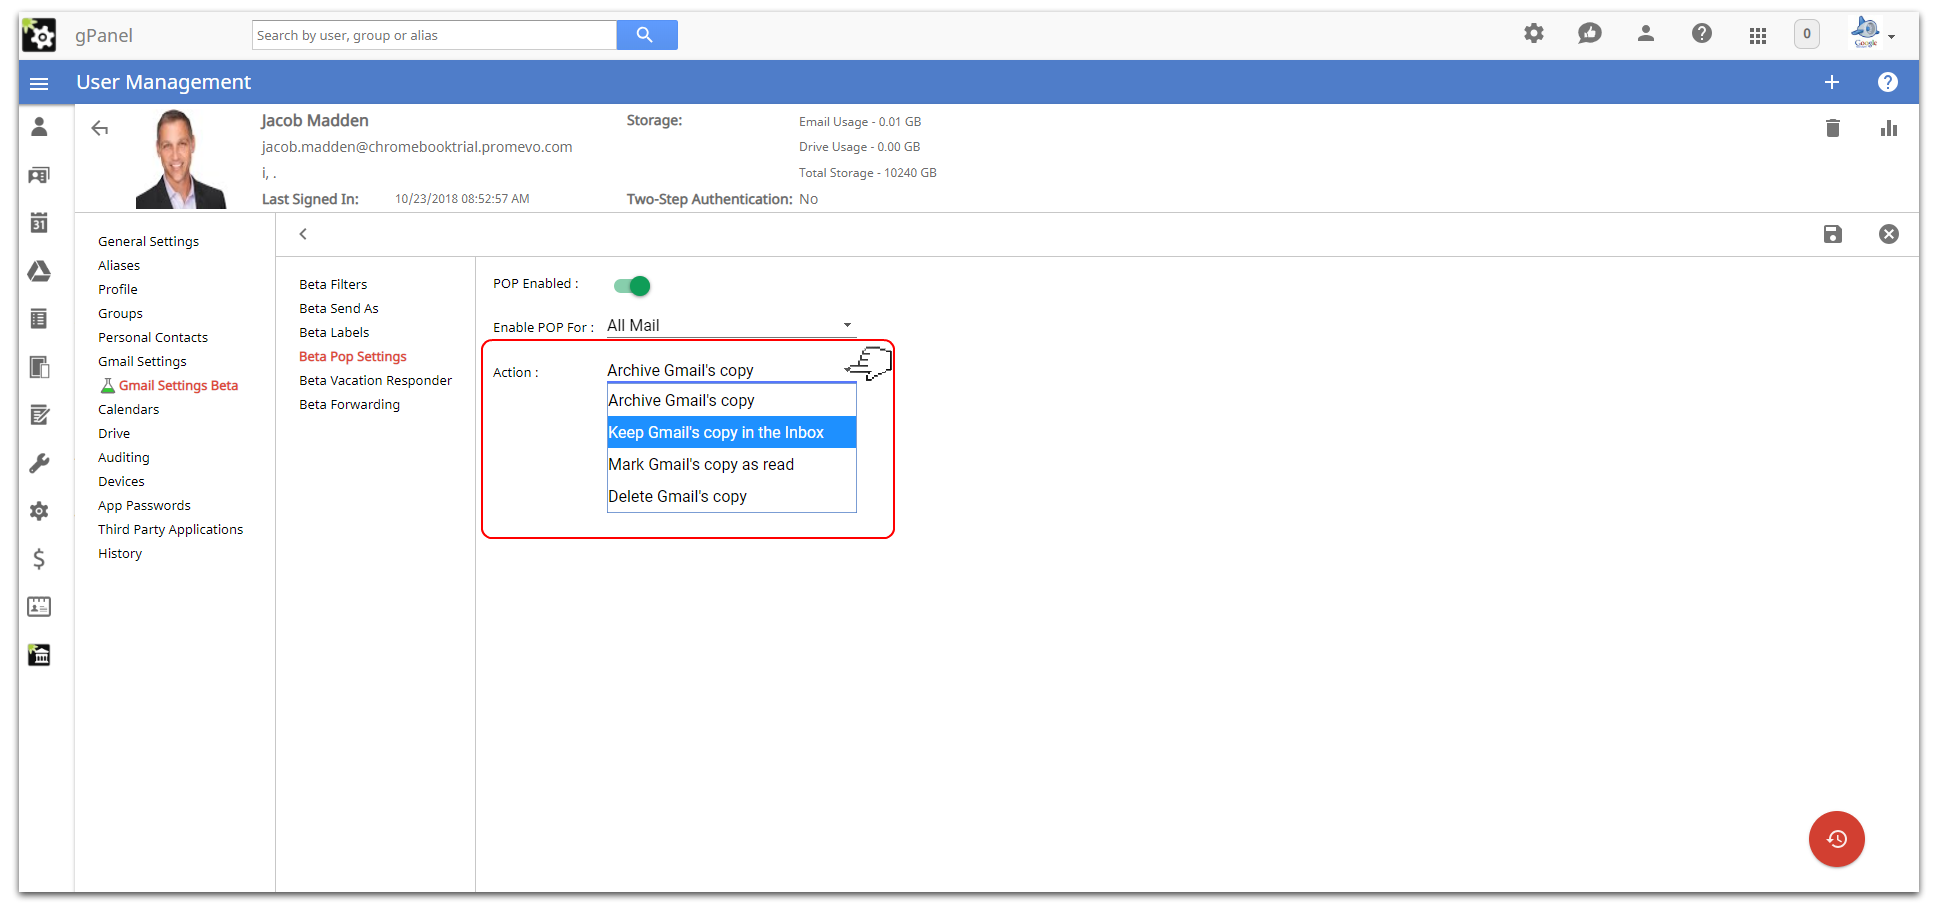 Gmail setting Beta: - gPanel for G Suite Help